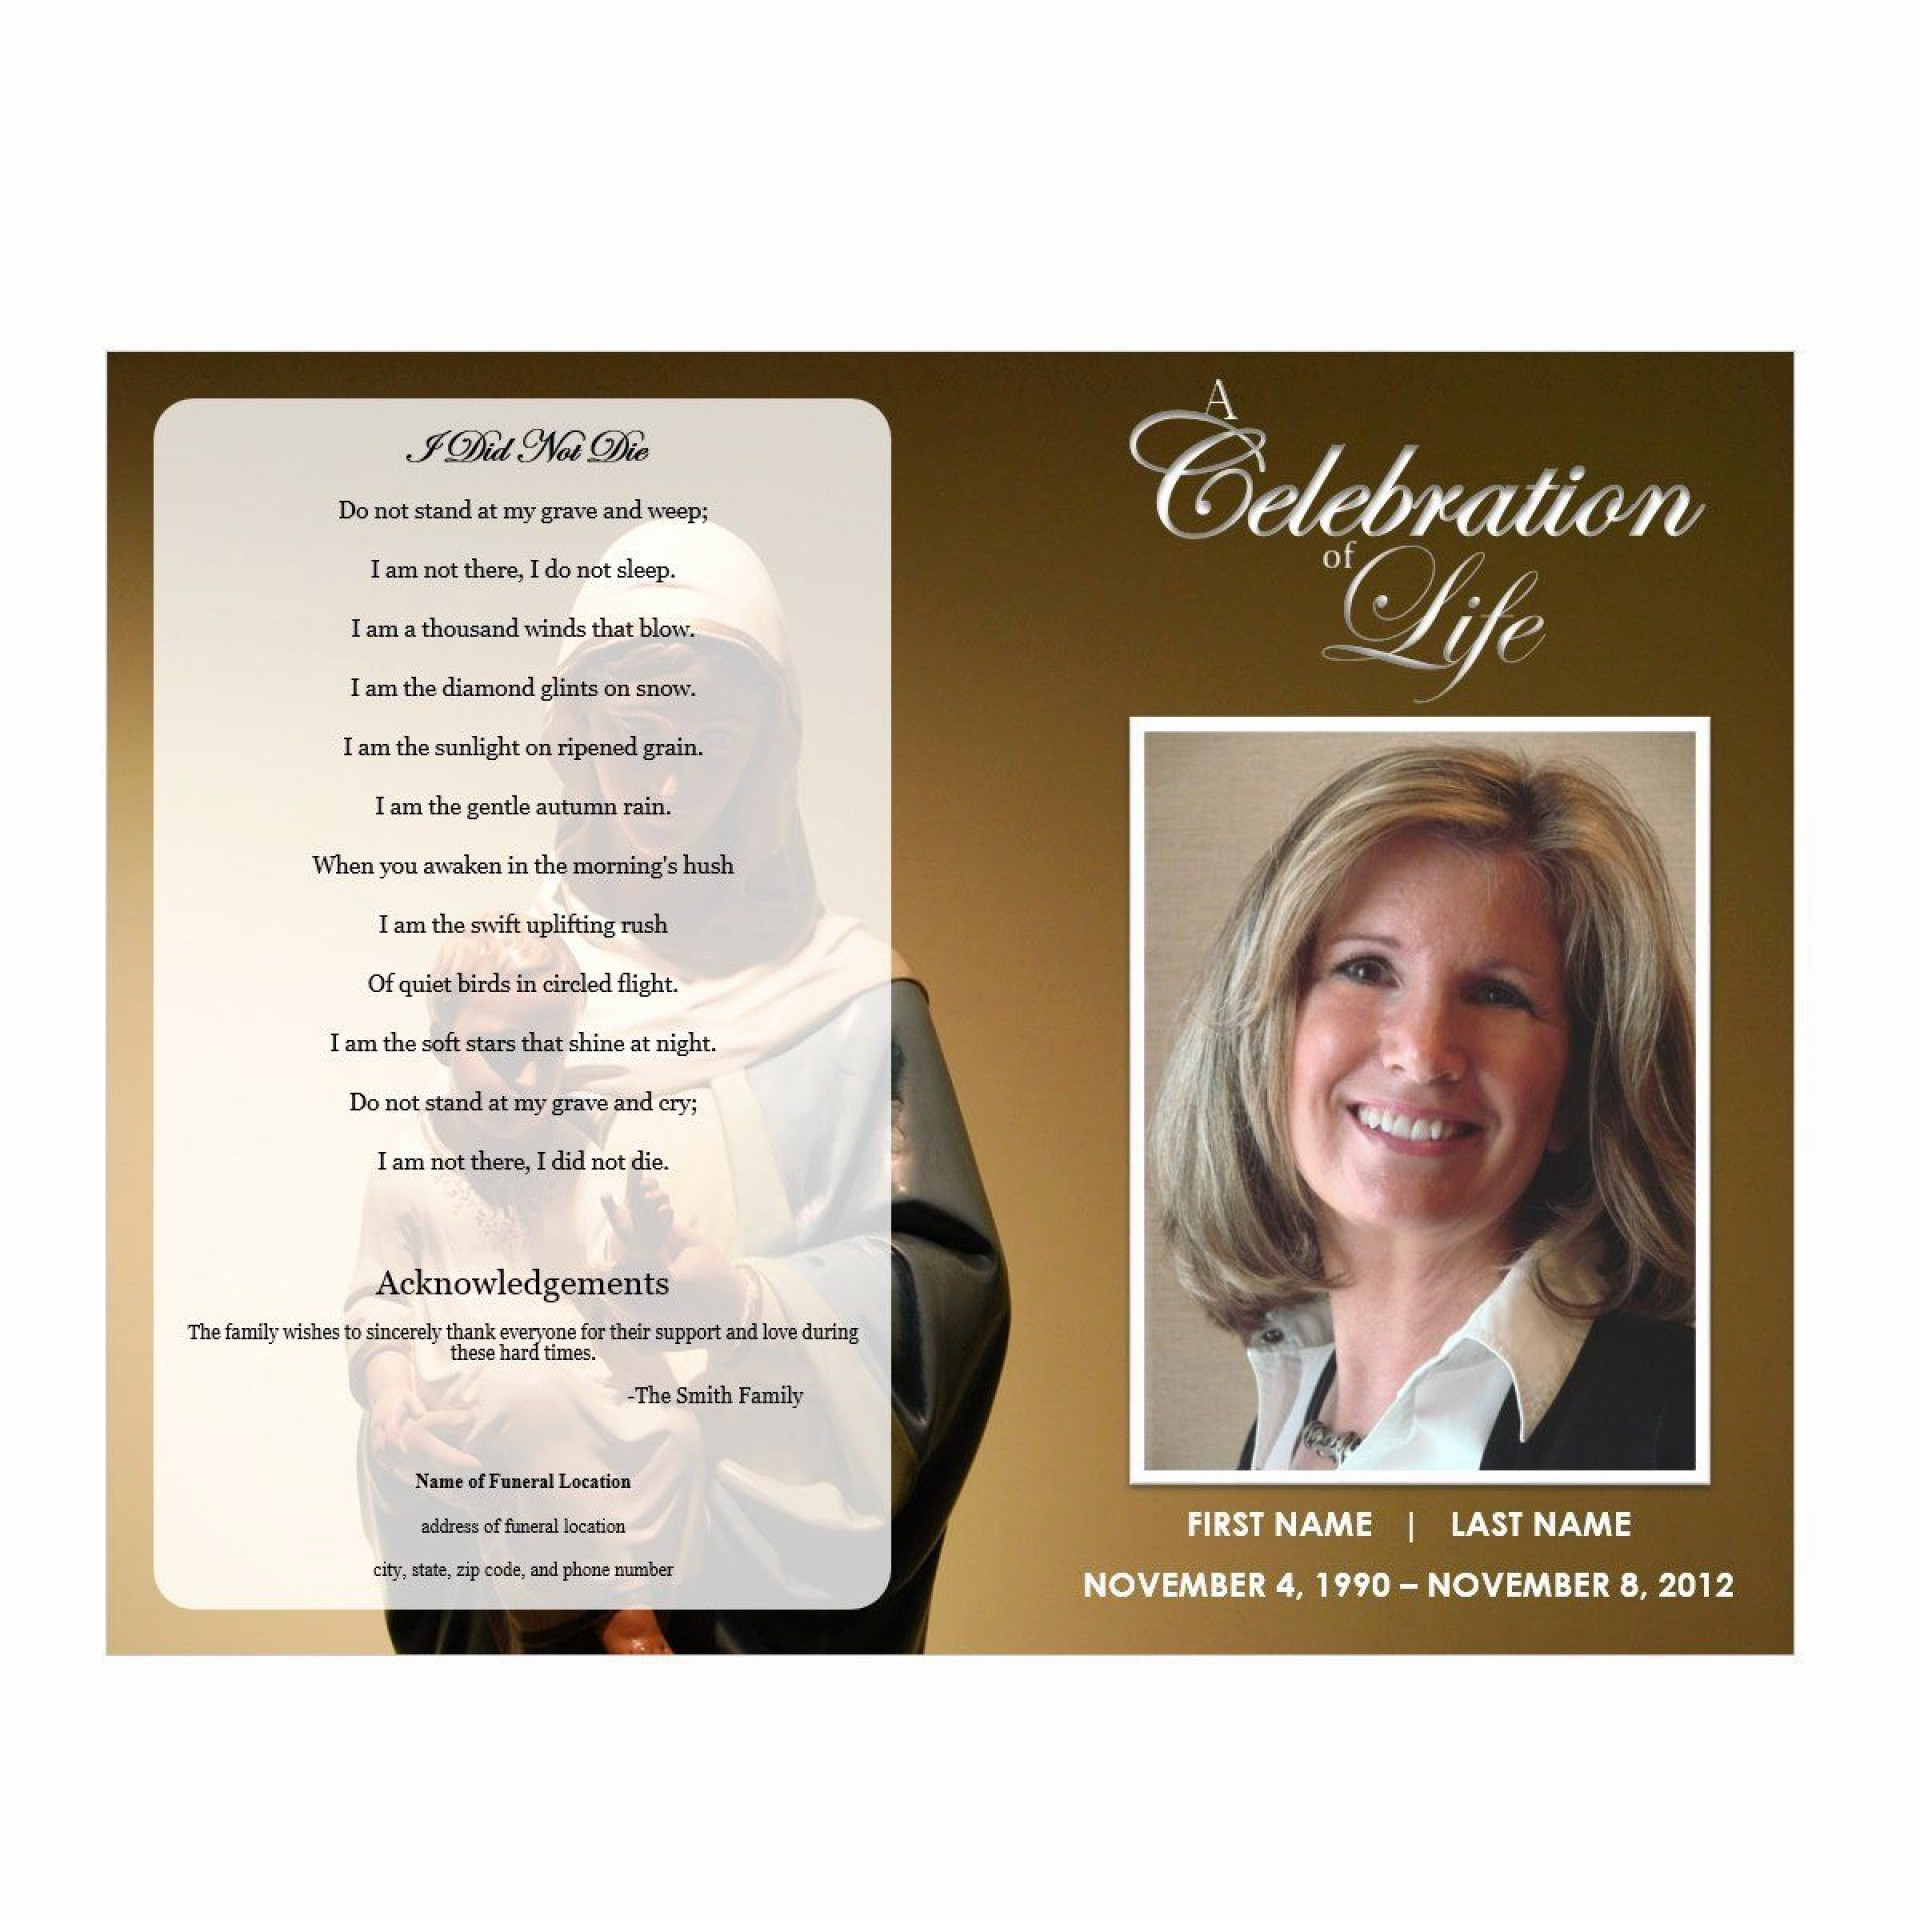 002 Stunning Free Celebration Of Life Brochure Template High Def  Flyer1920